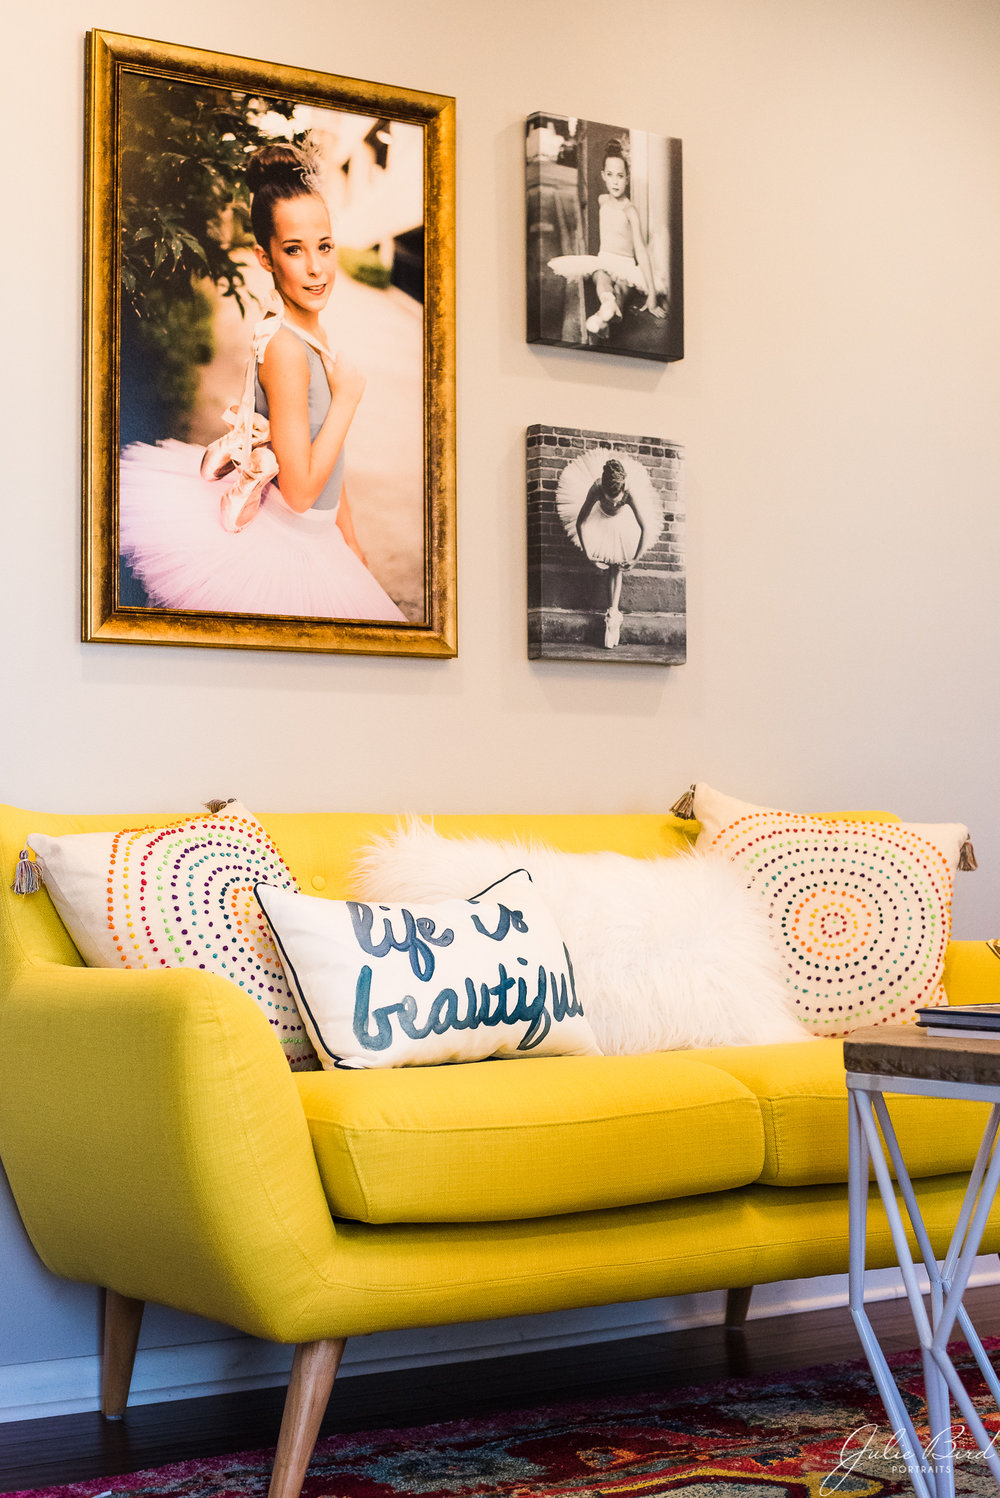 I love having a large gallery wall to display some of my favorite work and help clients visualize how canvases and portraits will look in their home.